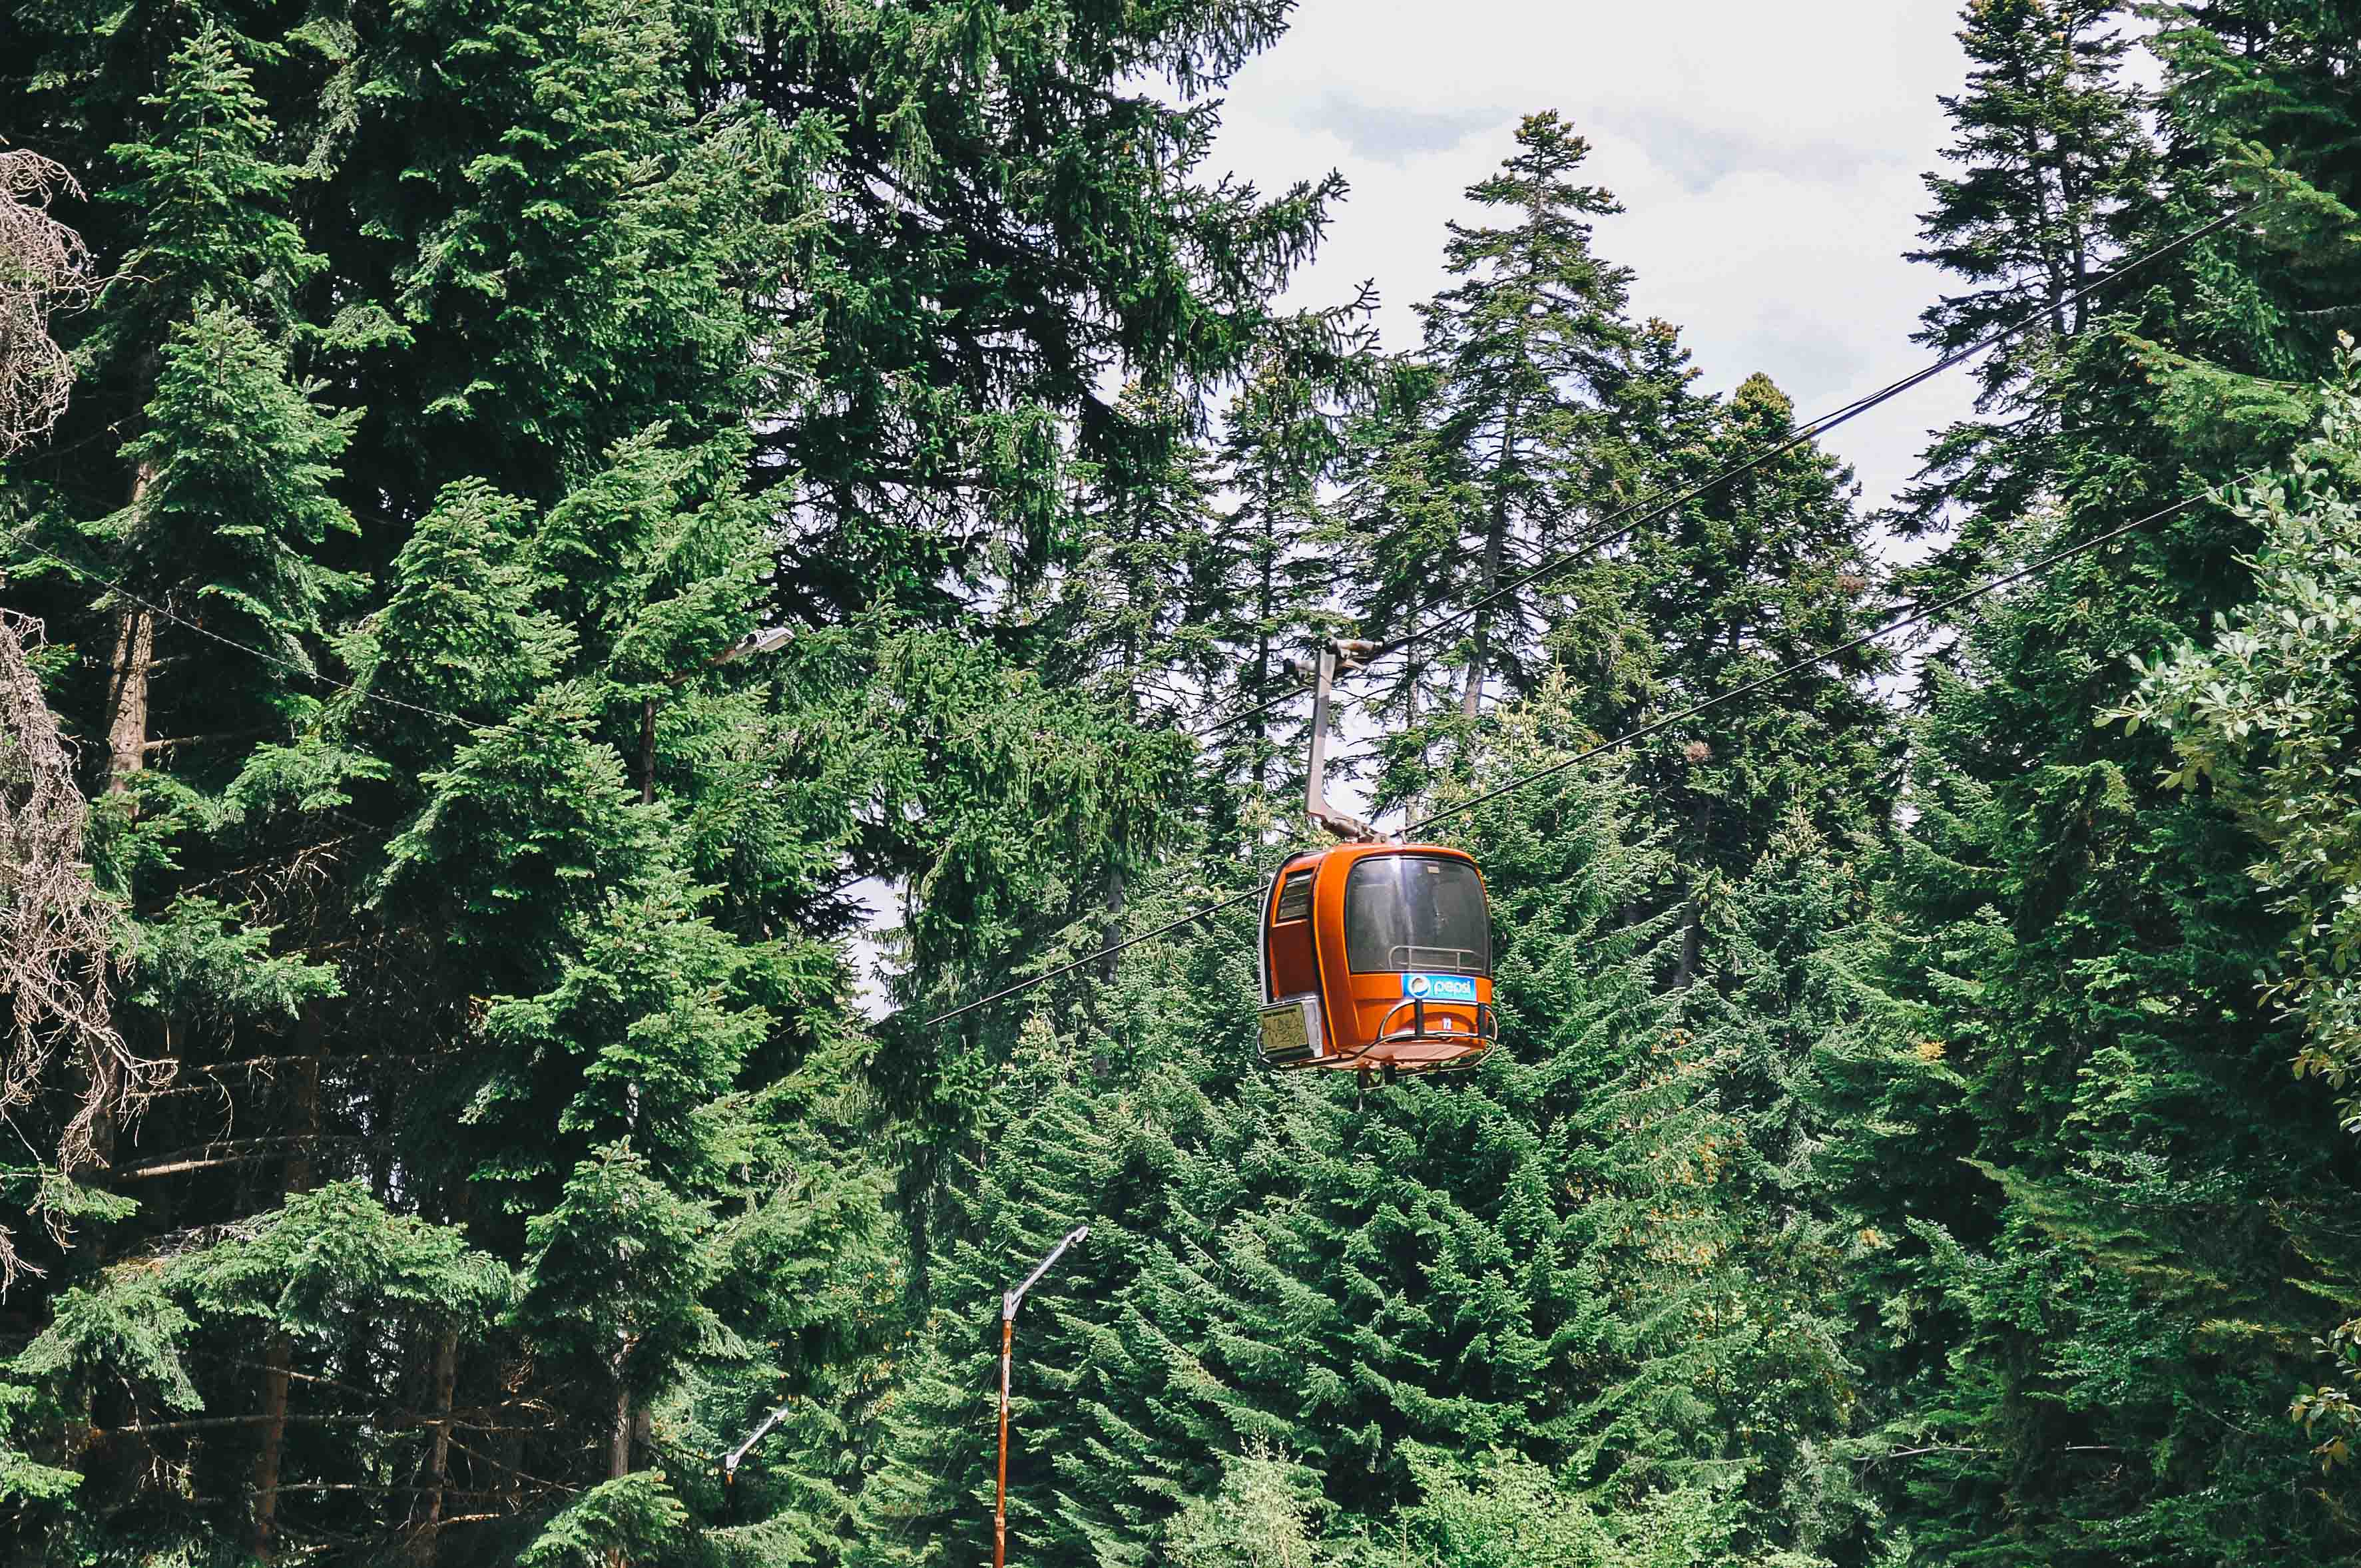 Mountain lift is flying over virgin forest